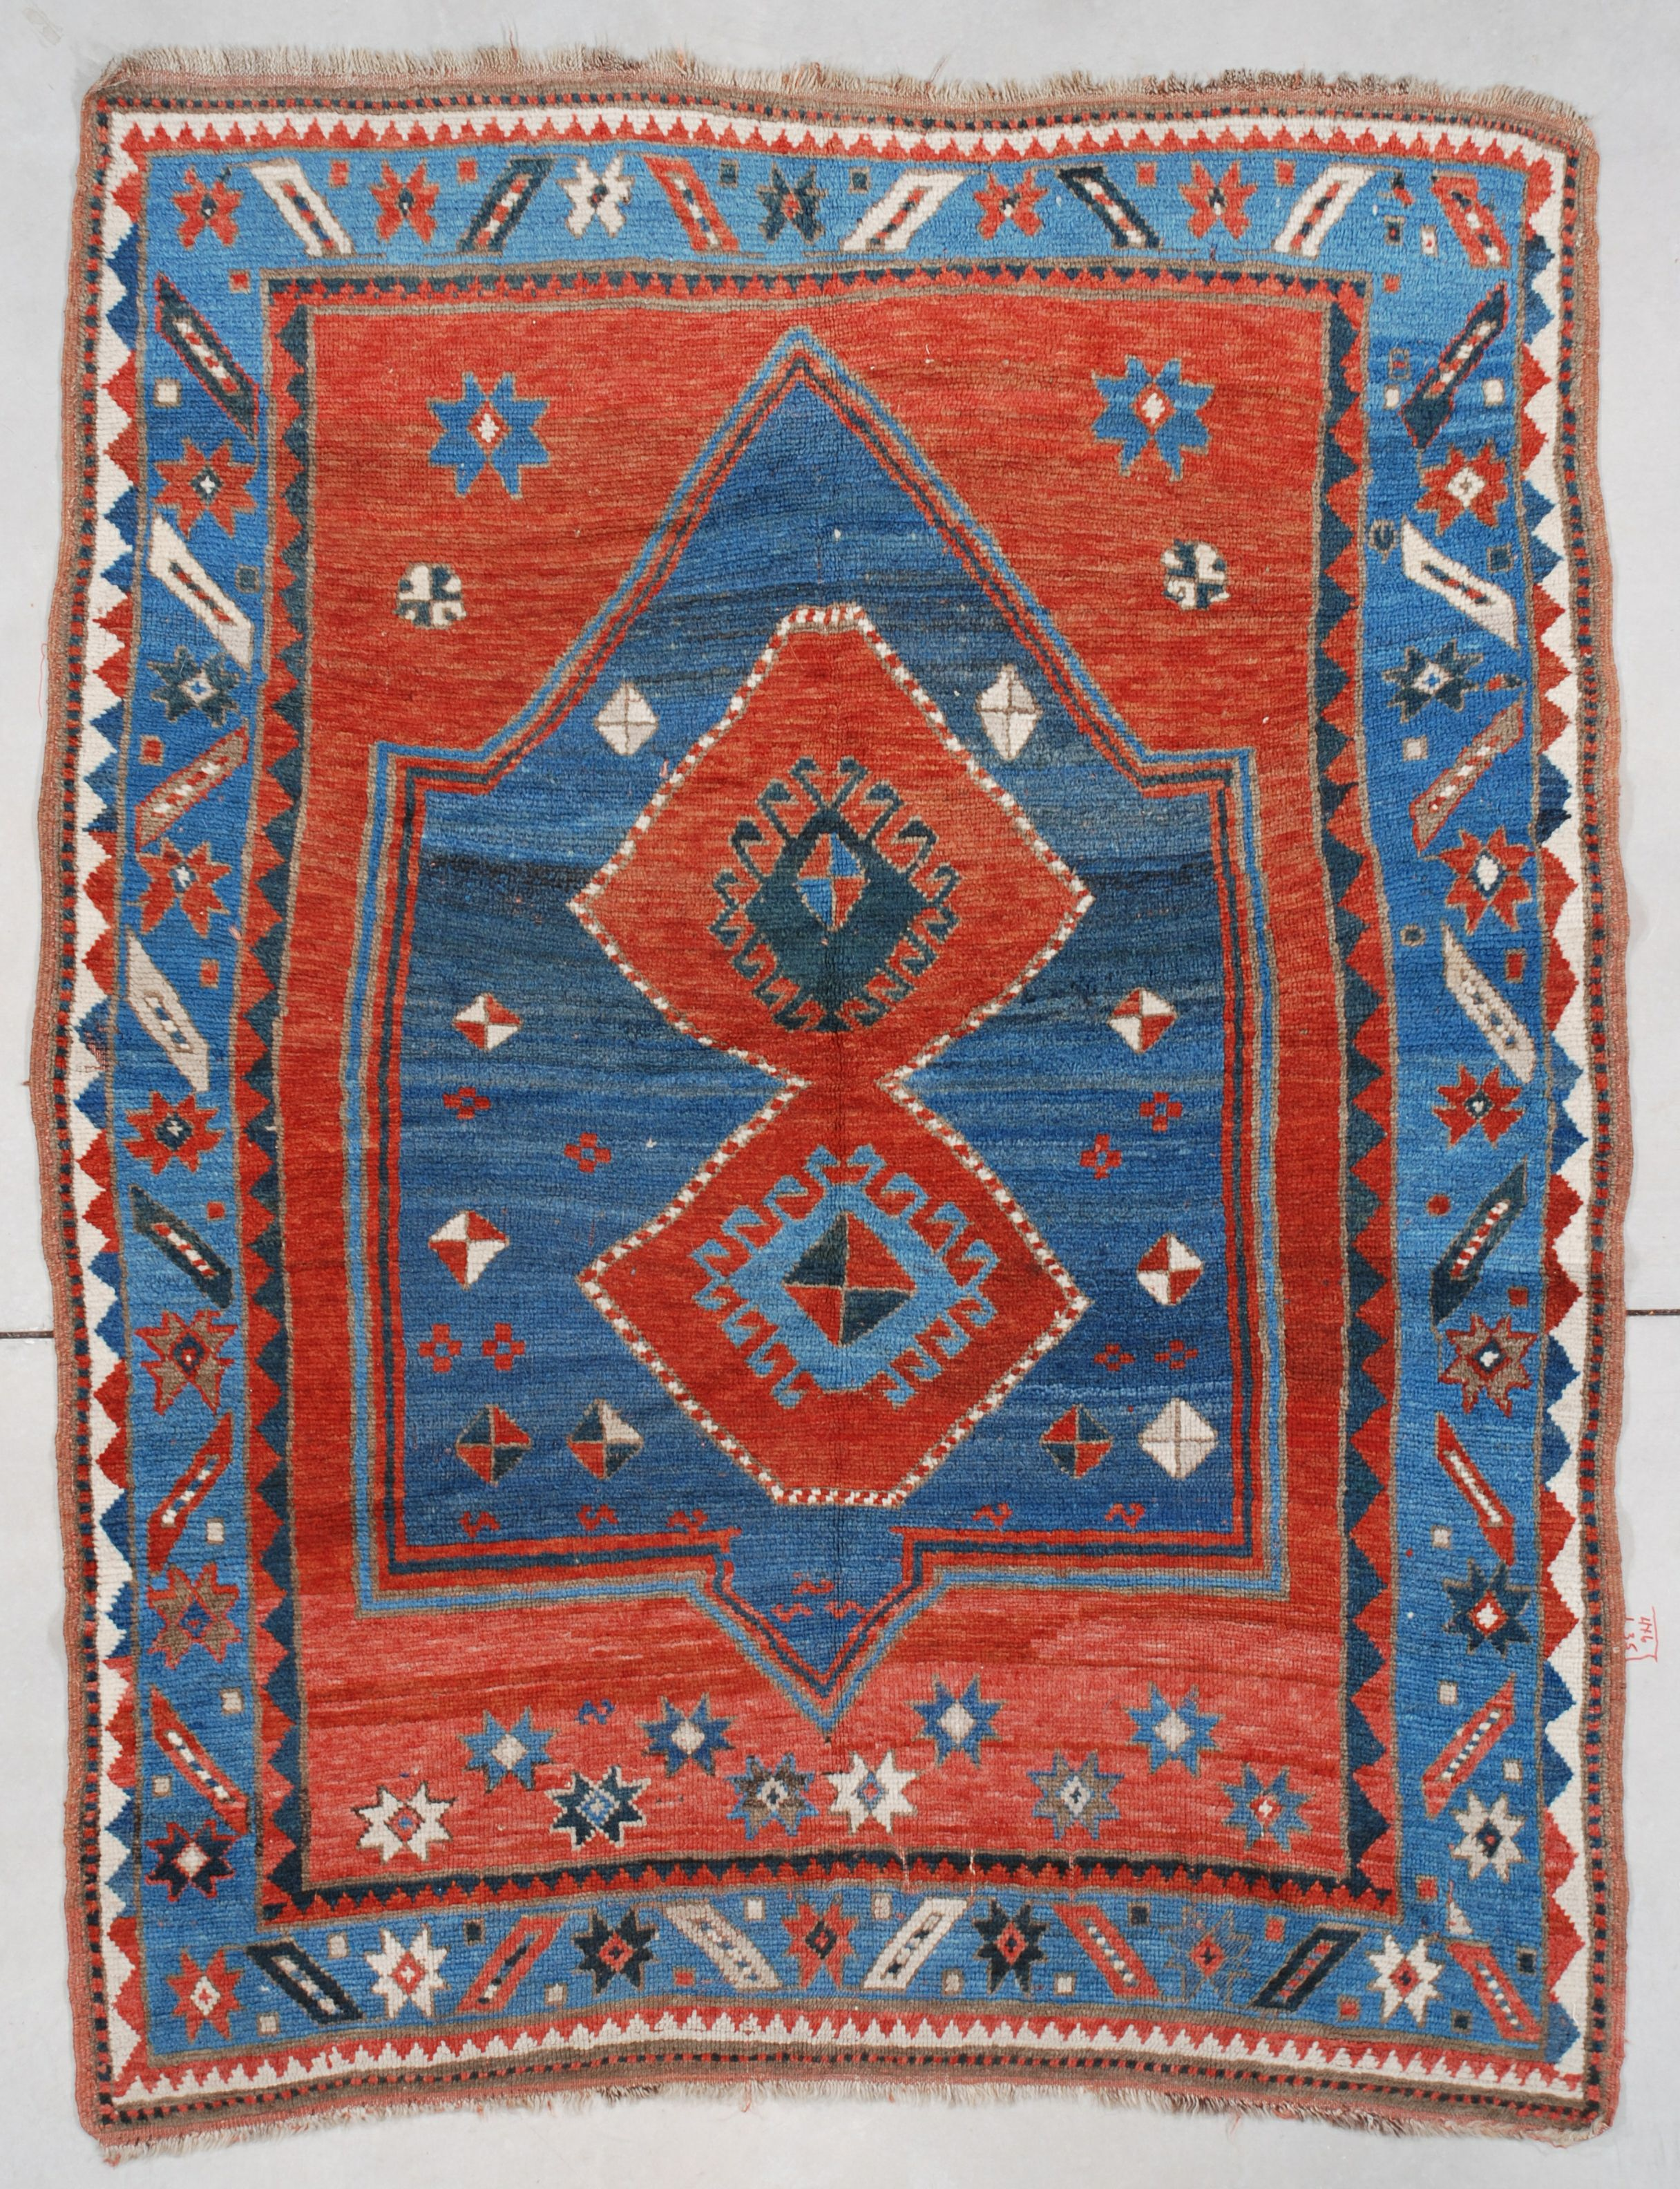 Kazak Teppiche 7499 Kazak Antique Caucasian Rug 4 3 X 6 4 Turkic Folklore And